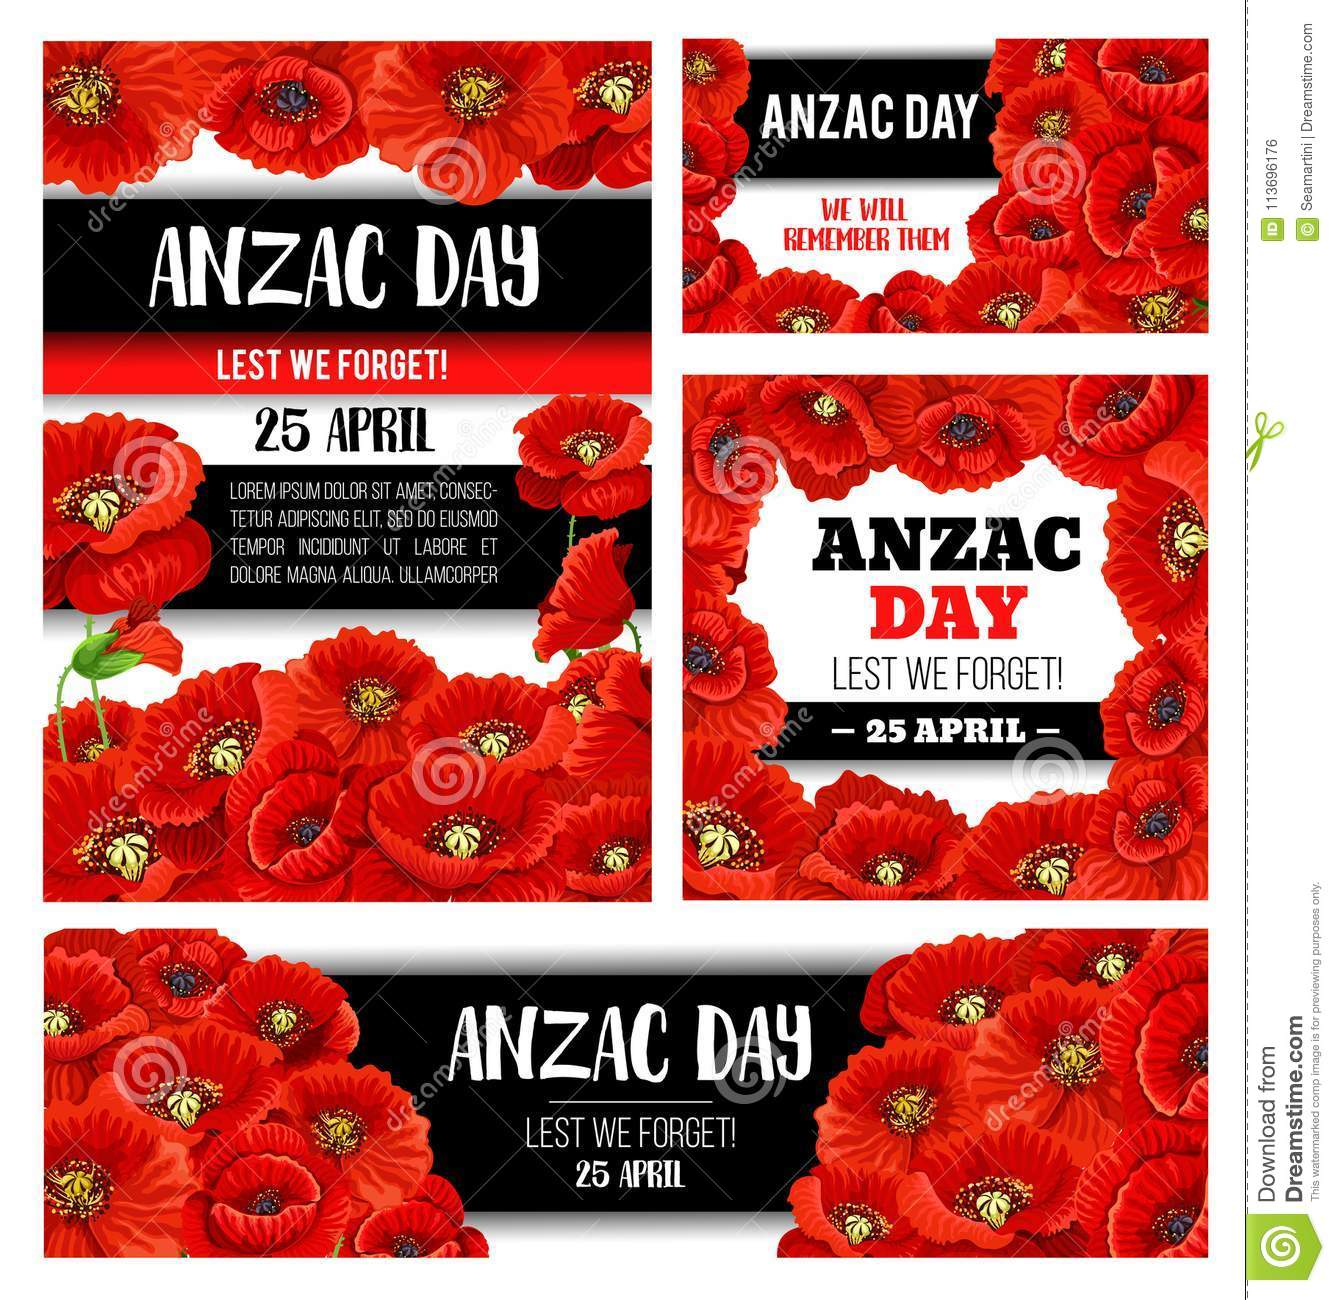 Anzac Day Memorial Banner With Red Poppy Flower Stock Vector